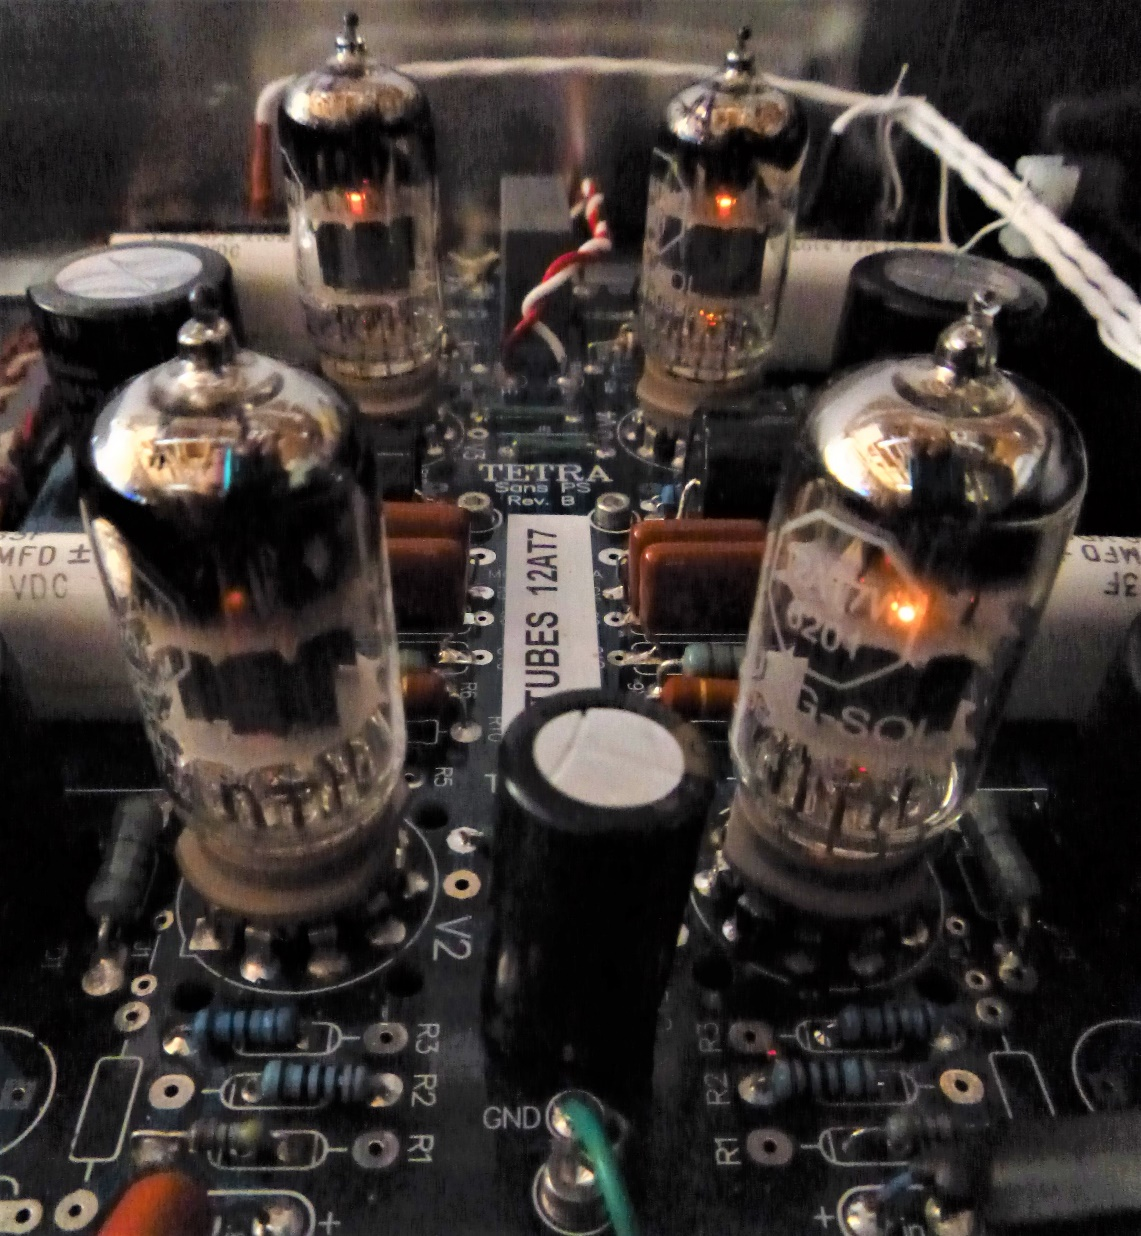 Diy All Tube Phono Stage Project Part 4 Assembling The Circuit Preamplifier Boards